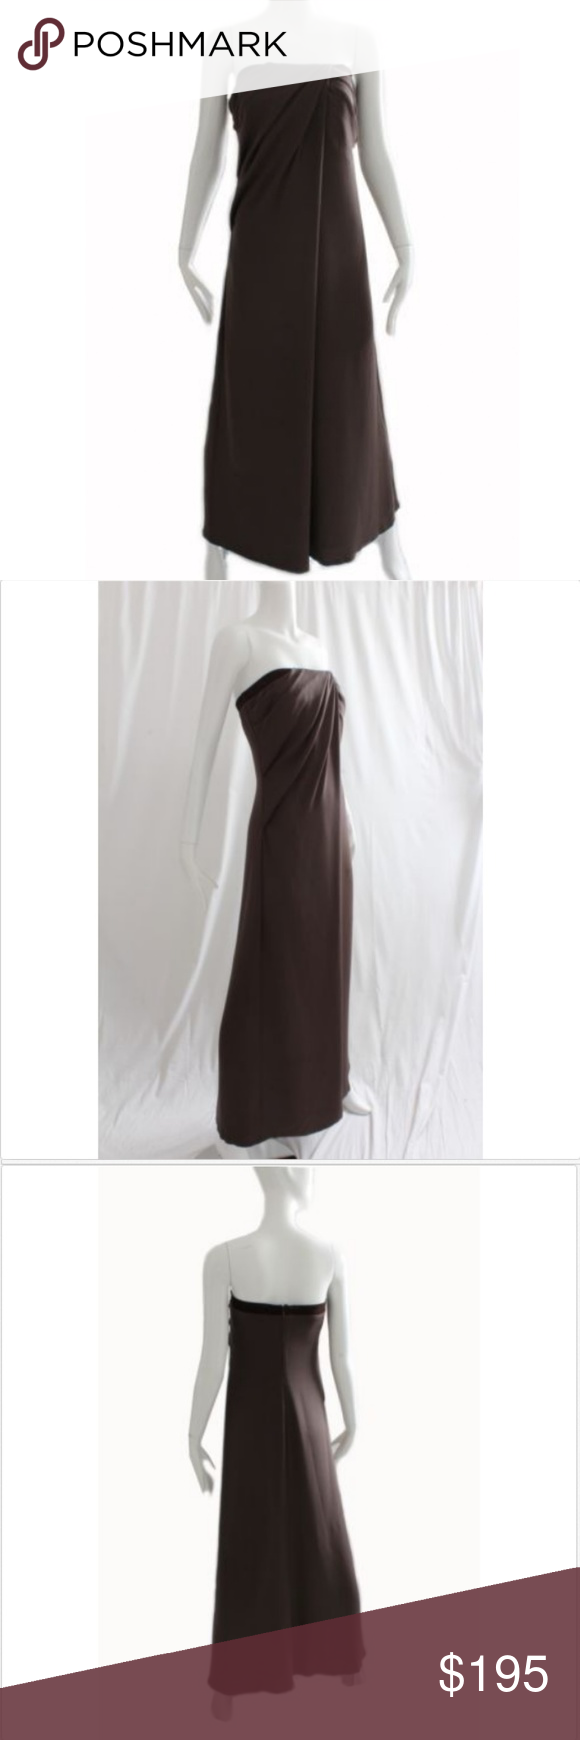 9c340739dbc Gucci Silk Evening Gown Draped Needs Repairs Sz 44 Authentic ...